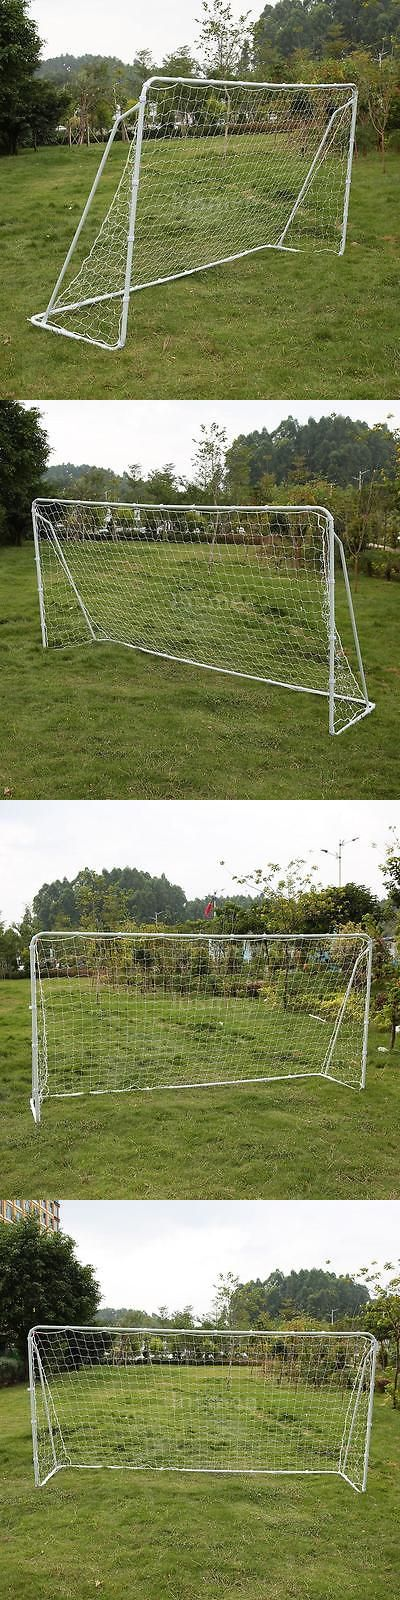 Goals and Nets 159180: New 12X6ft Full Size For Soccer Goal Post Junior Sports Training Football H7h5 -> BUY IT NOW ONLY: $42.69 on eBay!